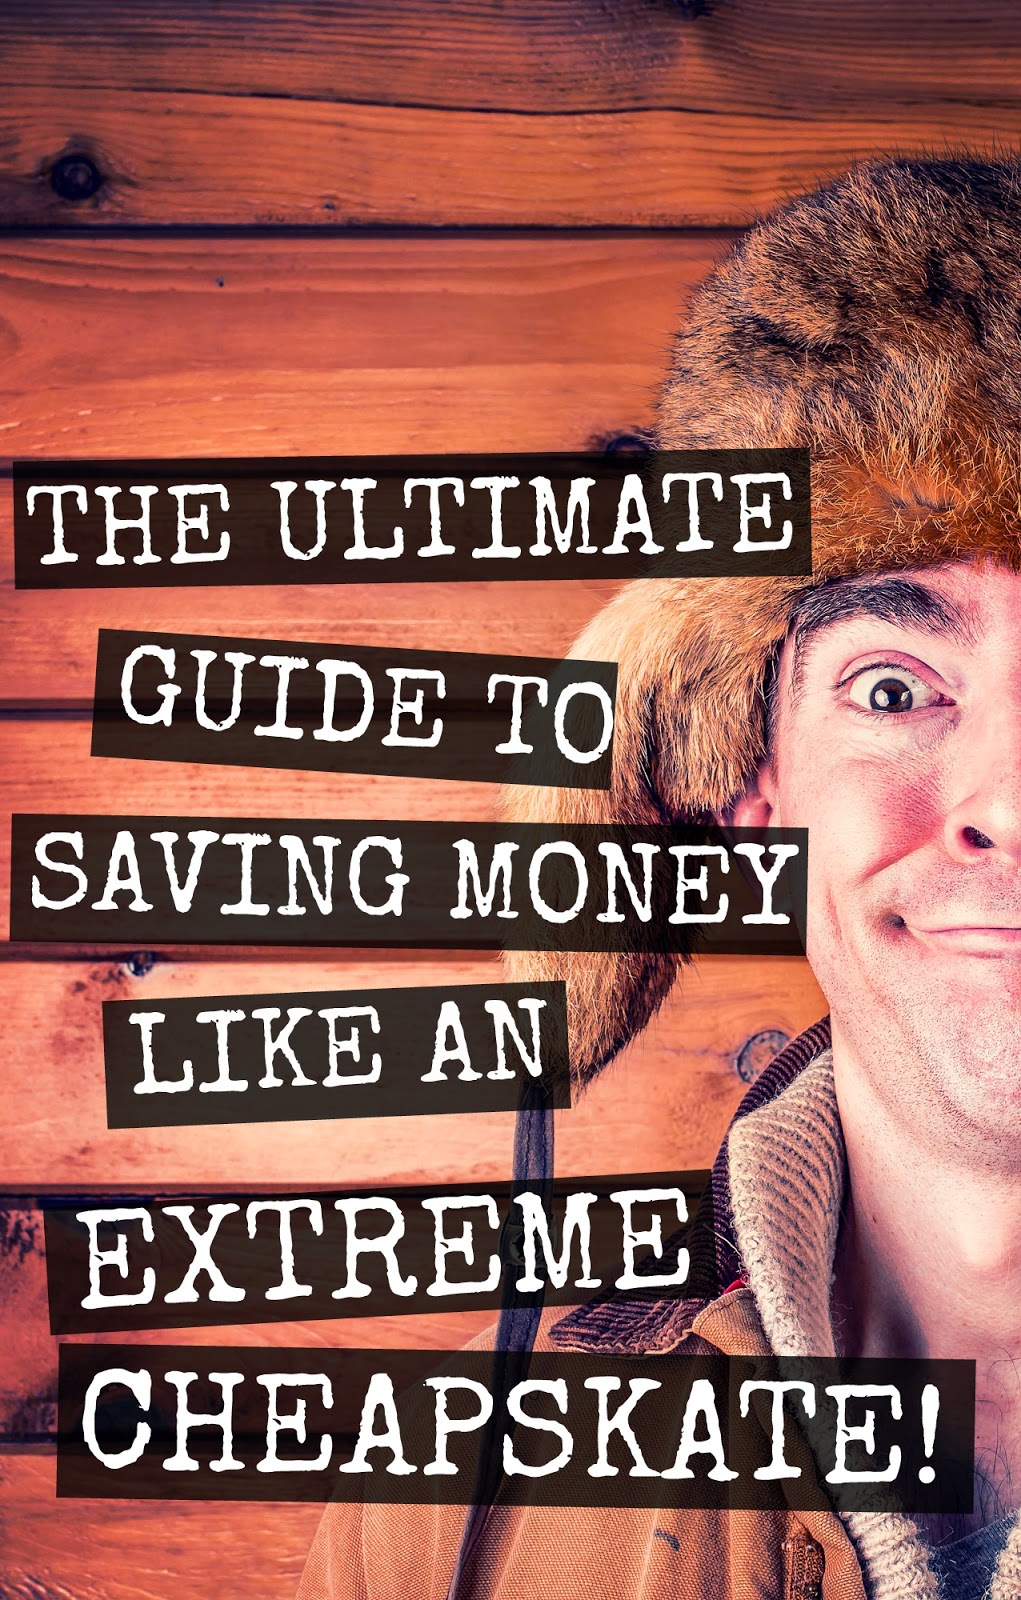 How to save money like a cheapskate. 200 ways to save money. Get out of debt, retire early, pay off your mortgage early, save for a wedding, save for vacation, build savings fast. How to be a cheapskate. Money saving tips. extreme cheapskate ideas everyday cheapskates greatest tips dollar stretcher tips how to live frugal how to live cheap but good cheapskate living frugal cheapskate grocery list things extreme cheapskates do  how to stop wasting money on food i can't stop spending my money how to stop spending money on unnecessary things wasting money essay how to stop buying stuff you don't need waste of money quotes   how to live frugal cheap living tips how to live on nothing living cheap in retirement cheapskate living cheapest way to live housing cheapest way to live alone